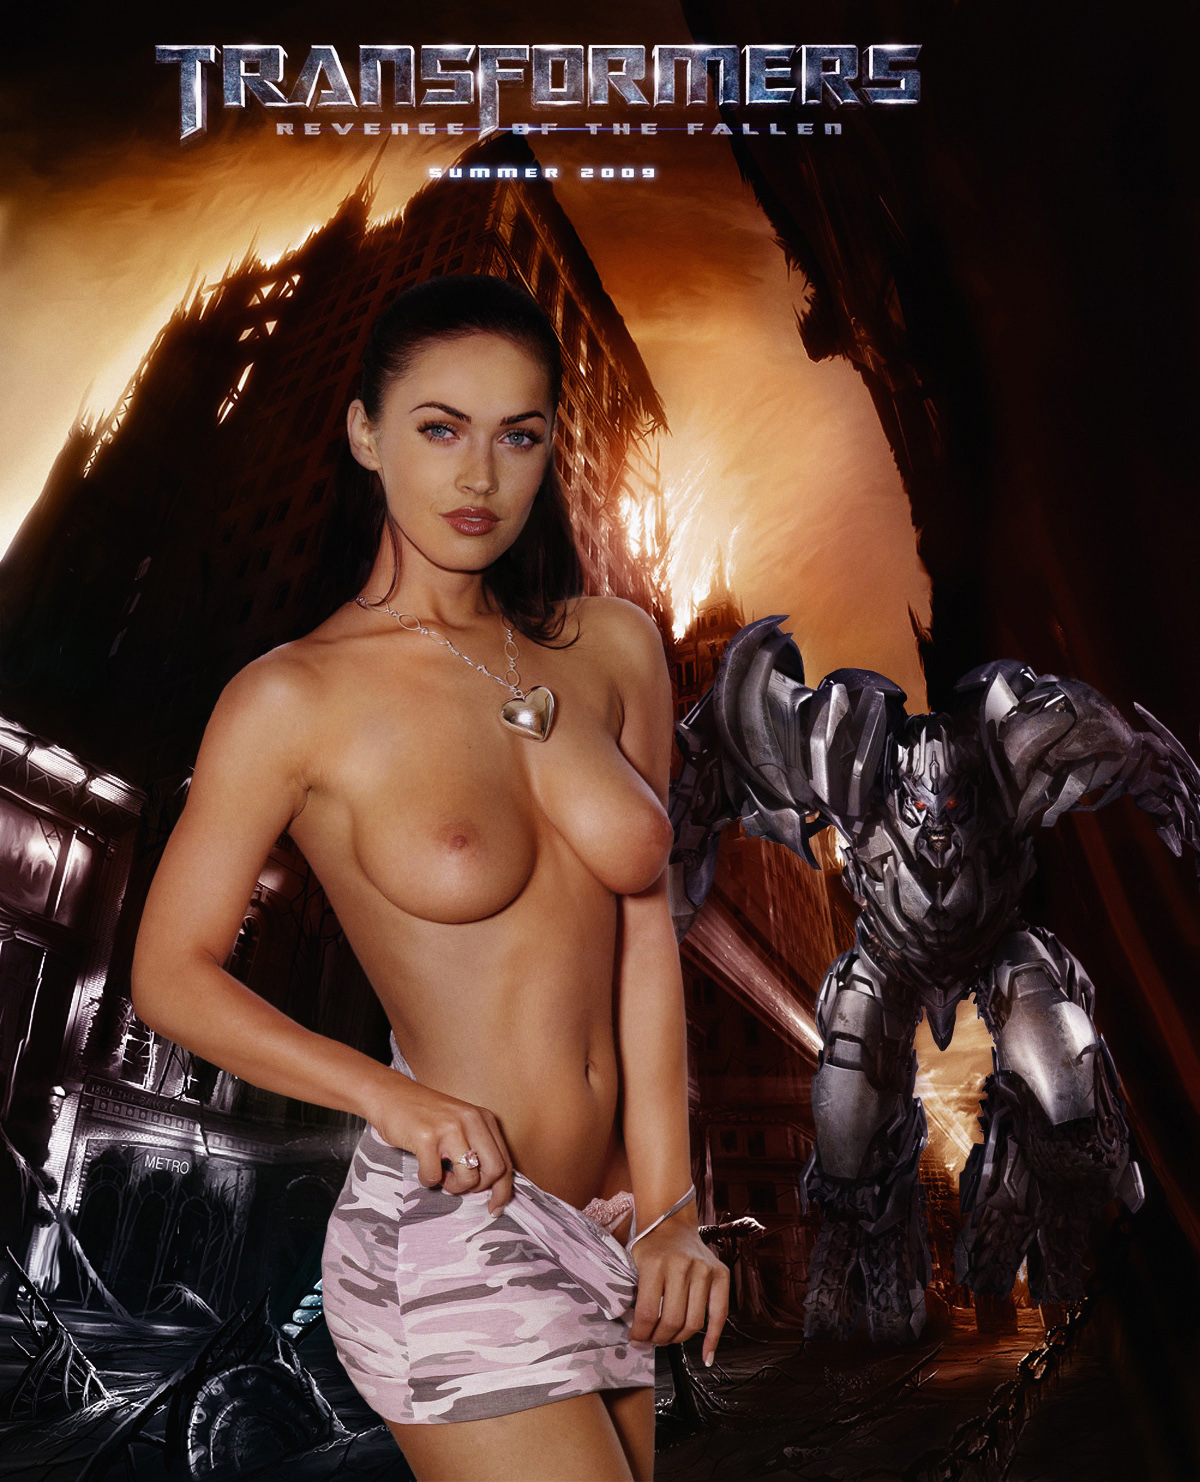 Mikayla on transformers nude adult channel porn